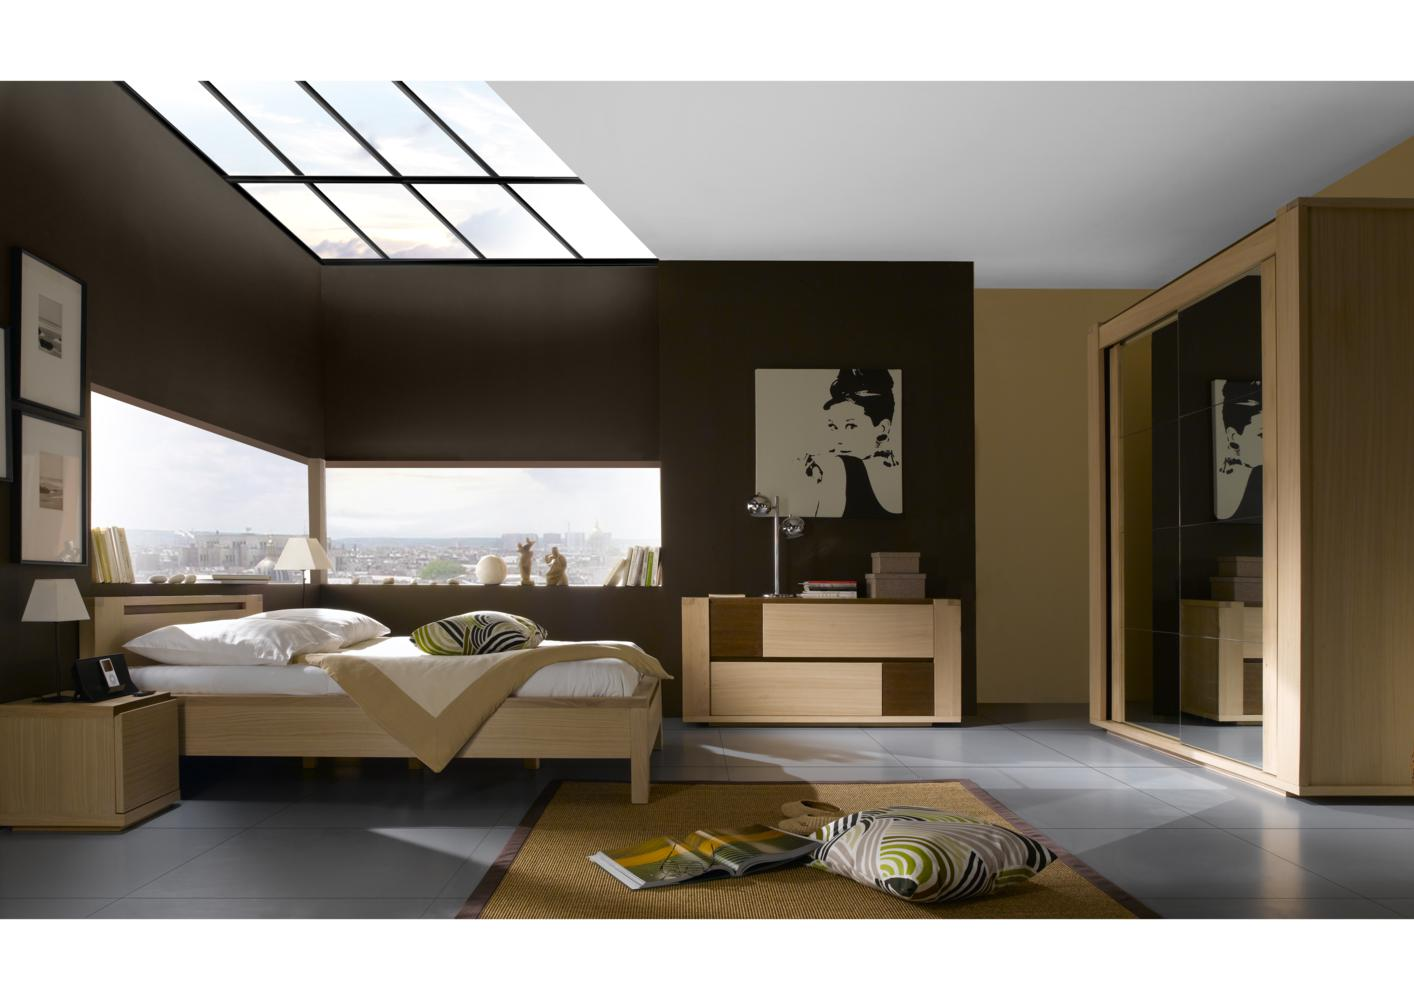 acheter votre lit contemporain couchage en 140 ou 160 cm. Black Bedroom Furniture Sets. Home Design Ideas